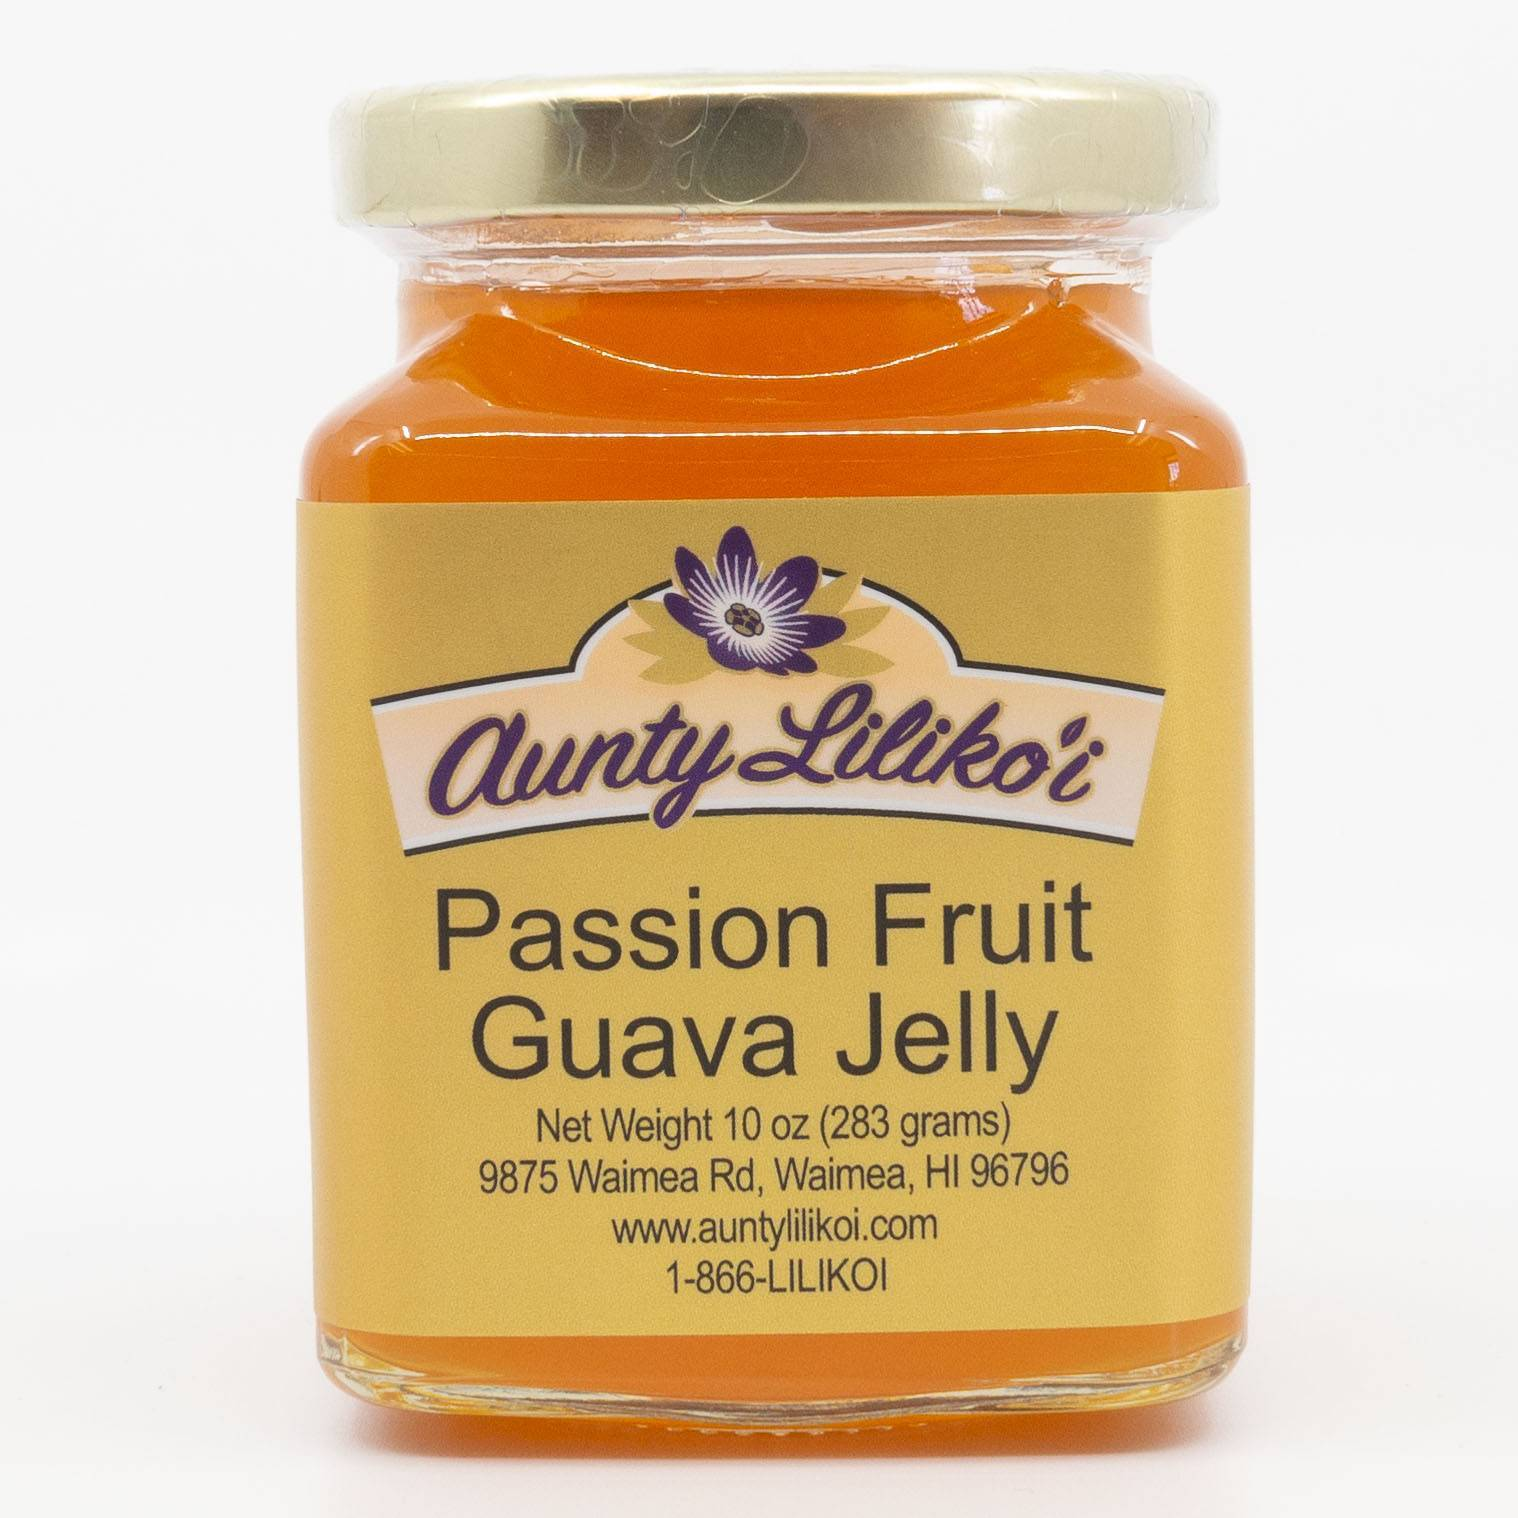 Top 13 Best Hawaiian Souvenirs to Bring Home featured by top US Hawaii blog, Hawaii Travel with Kids: Aunty Lilikoi Passion Fruit Guava Jelly from Hawaii